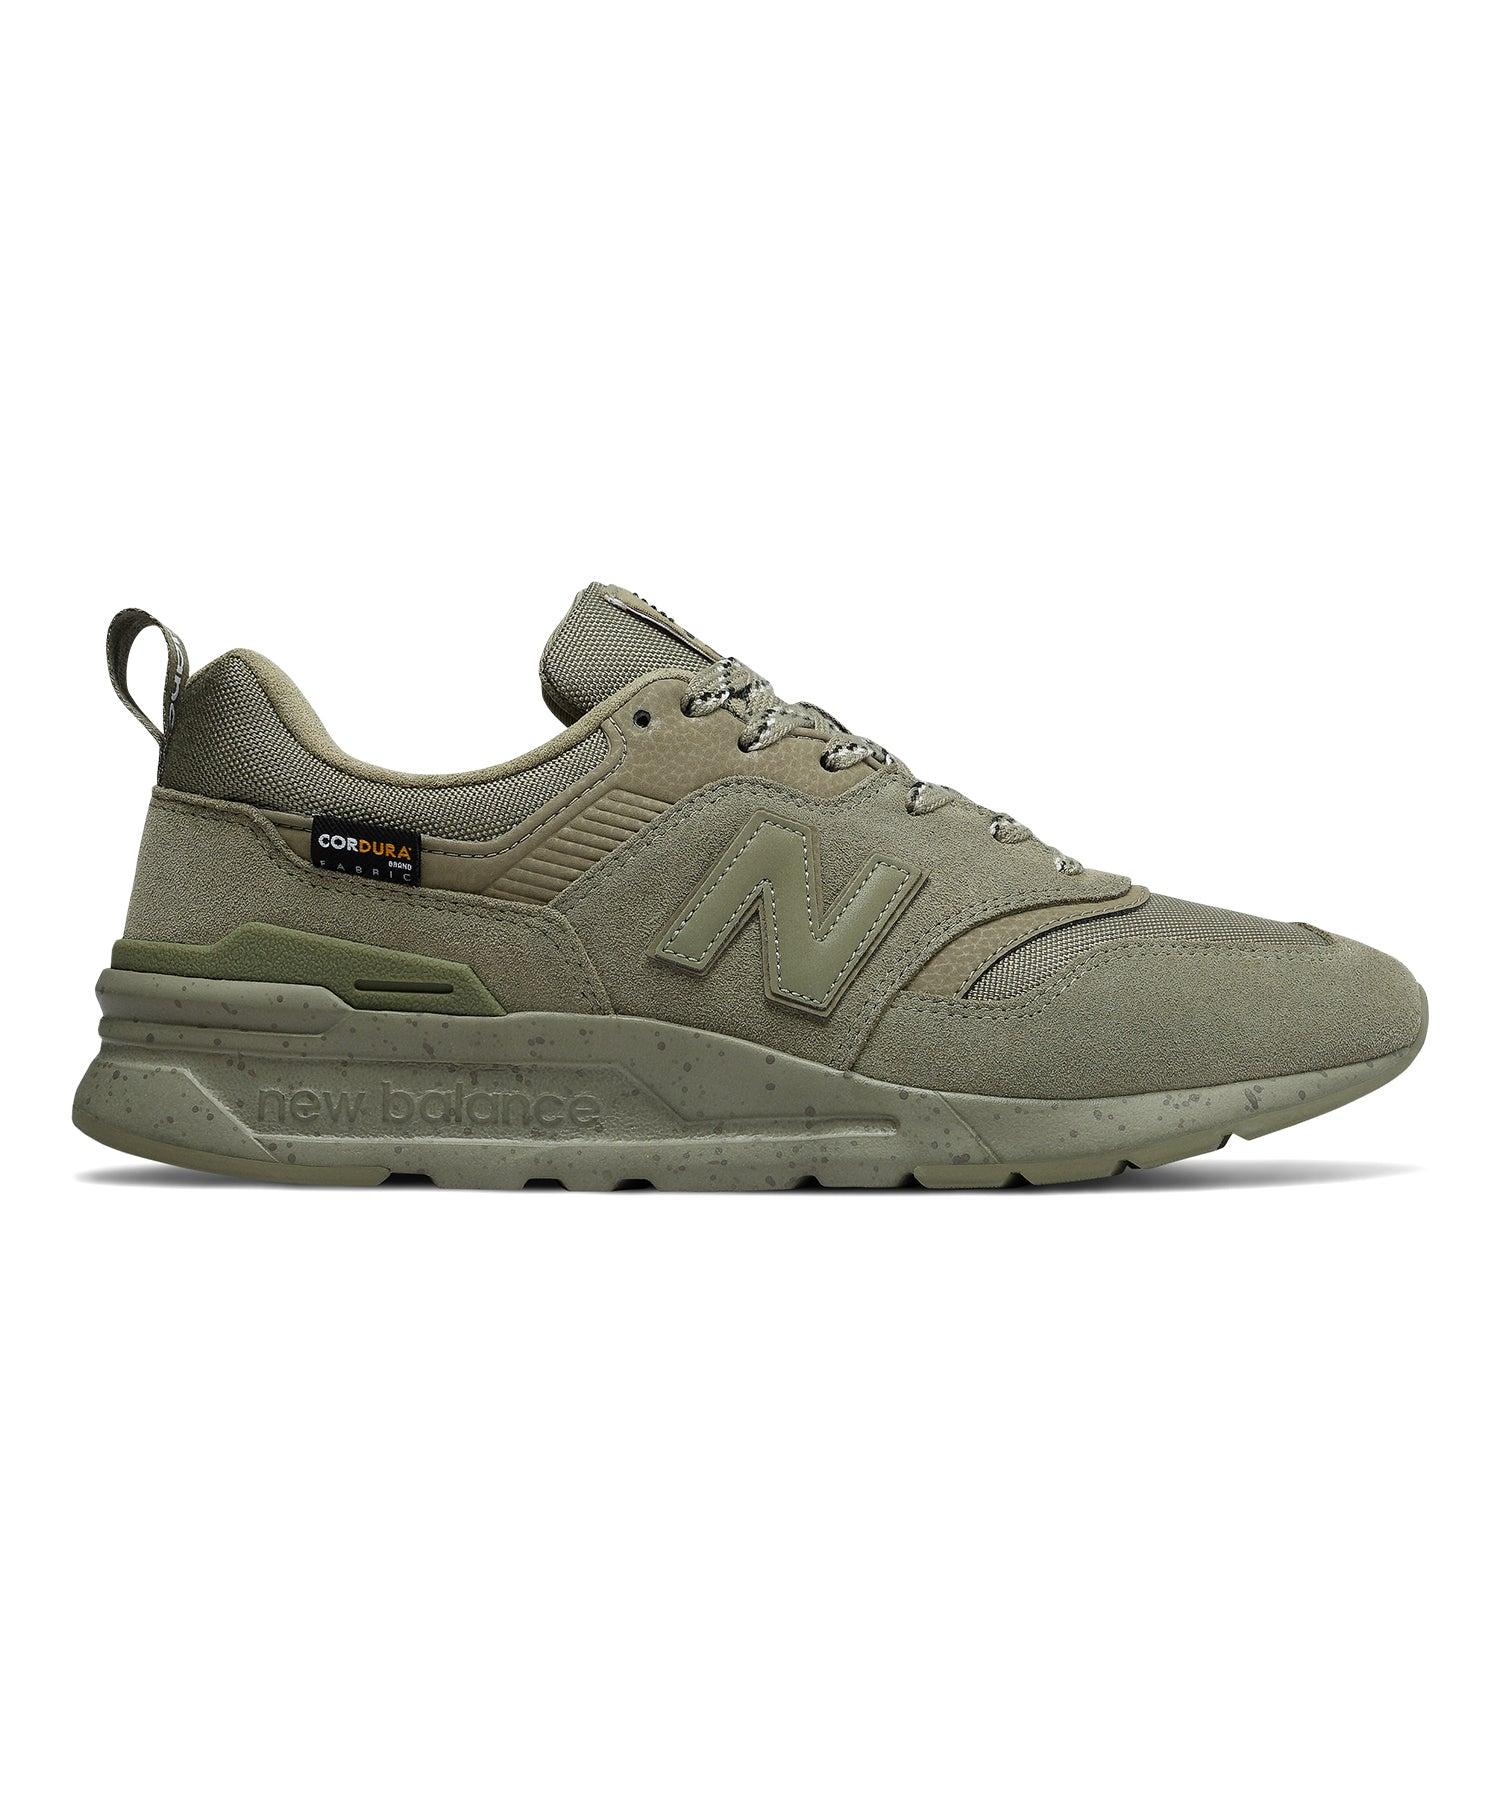 New Balance 997 Cordura in Sage